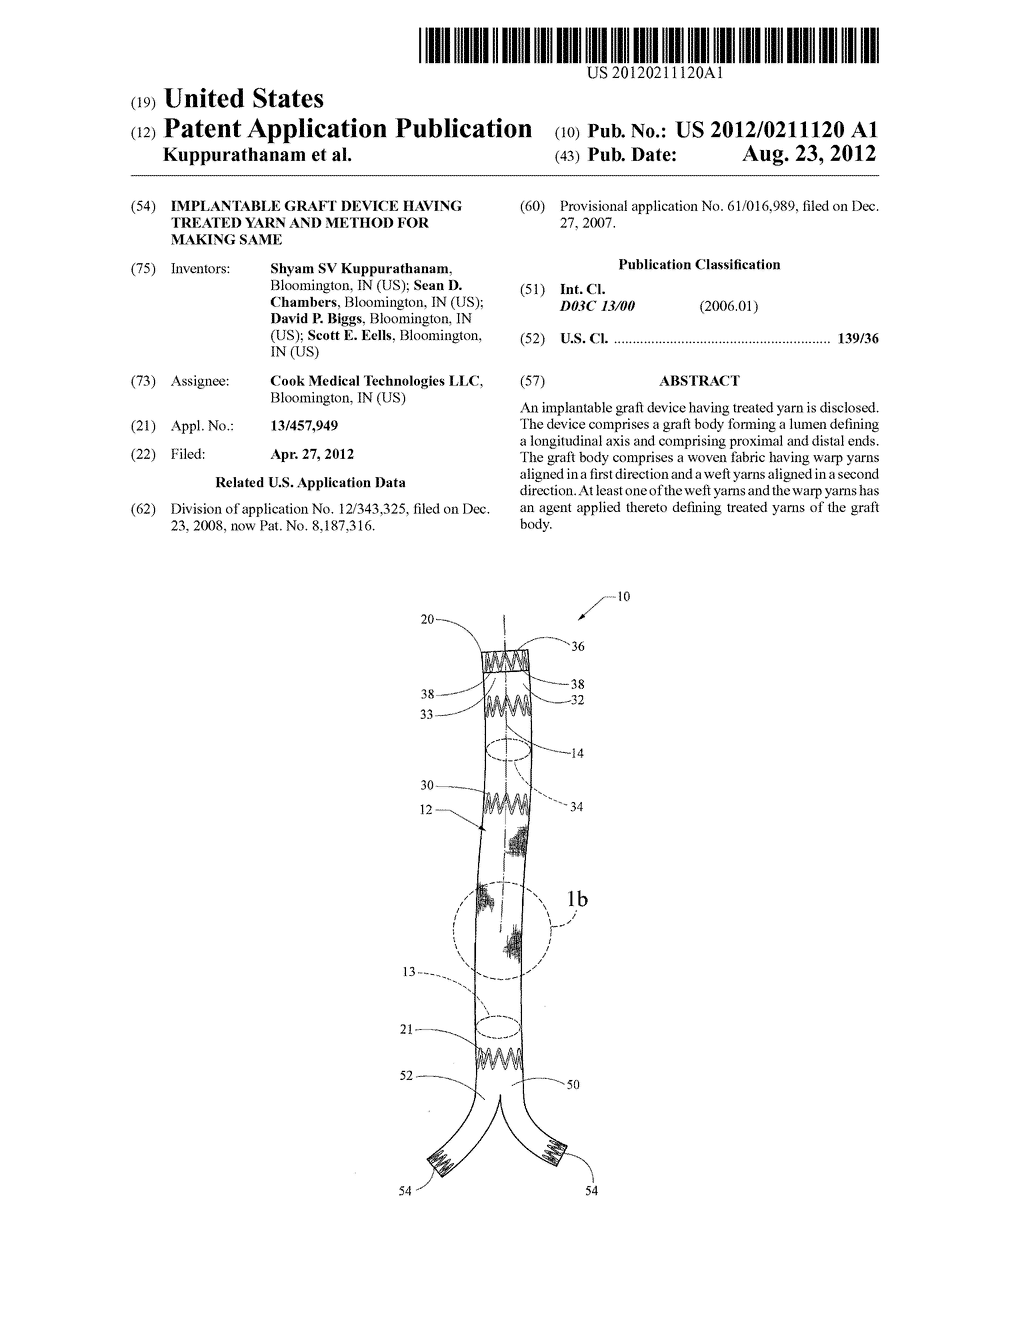 IMPLANTABLE GRAFT DEVICE HAVING TREATED YARN AND METHOD FOR MAKING SAME - diagram, schematic, and image 01